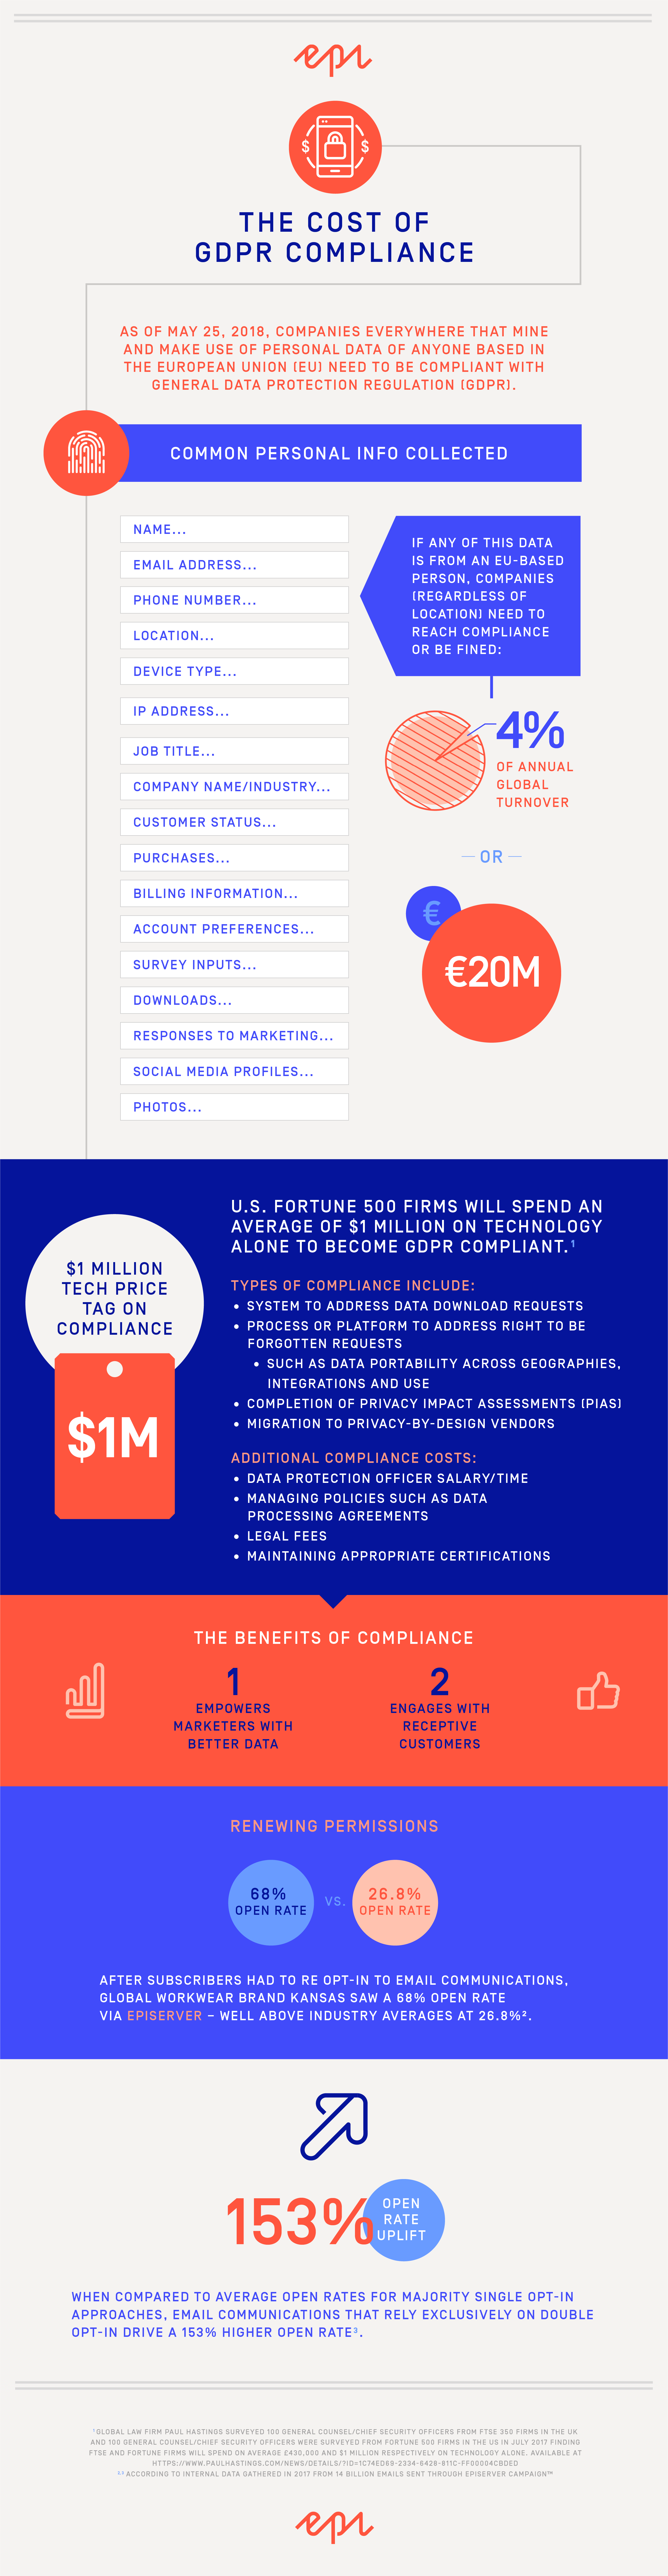 Cost of GDPR Compliance